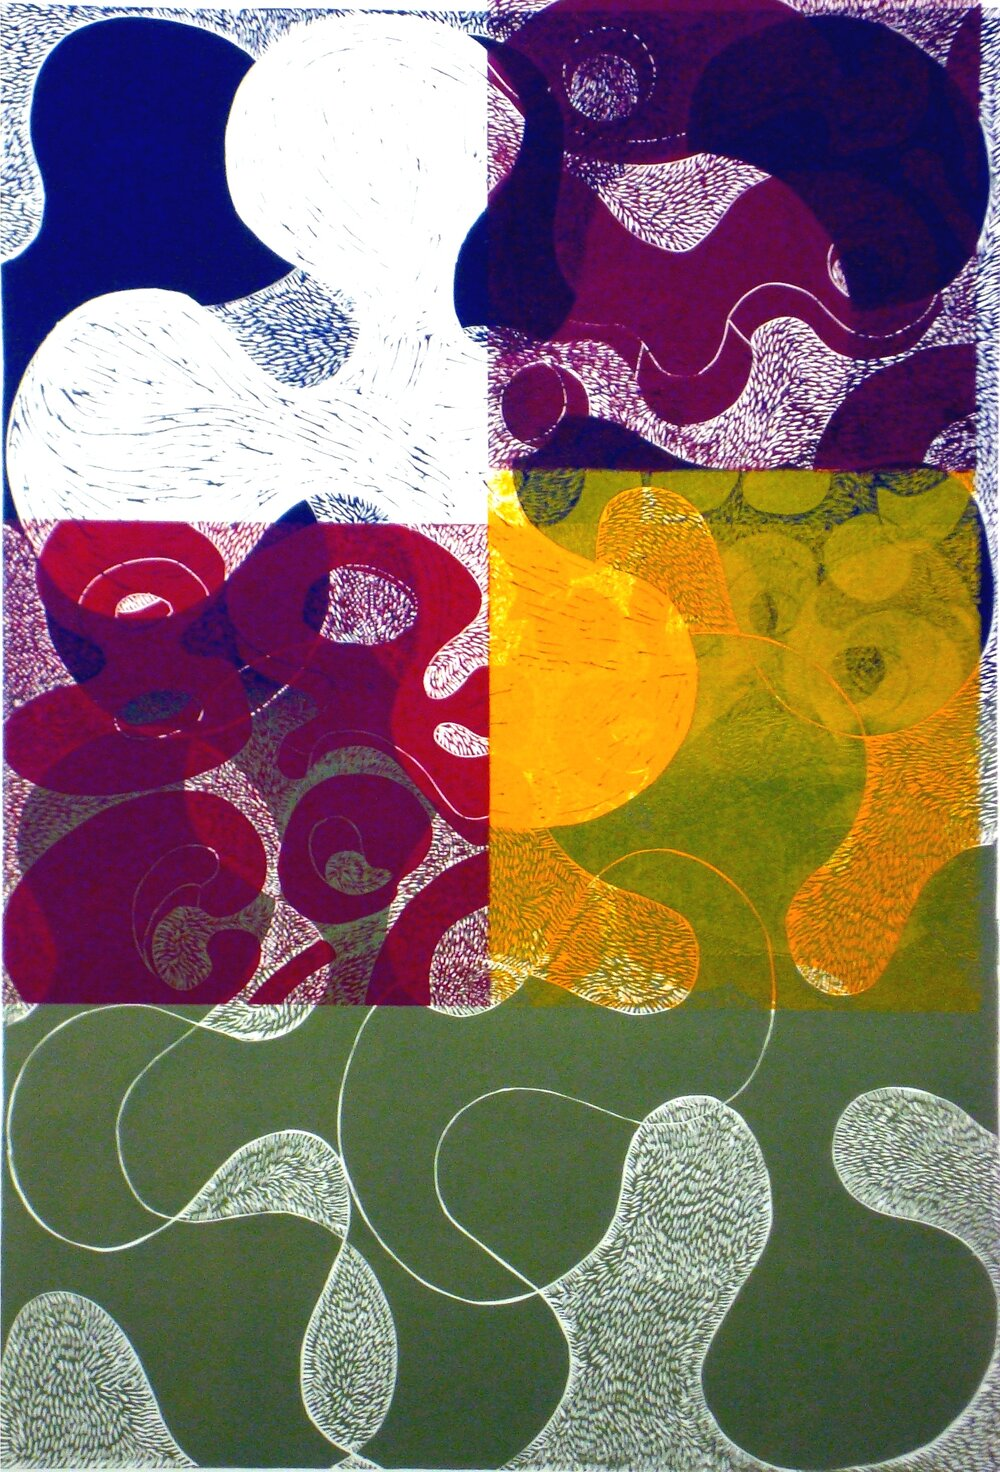 "Prop Series: Mix, blockprint, 36""x24"""", 2013"